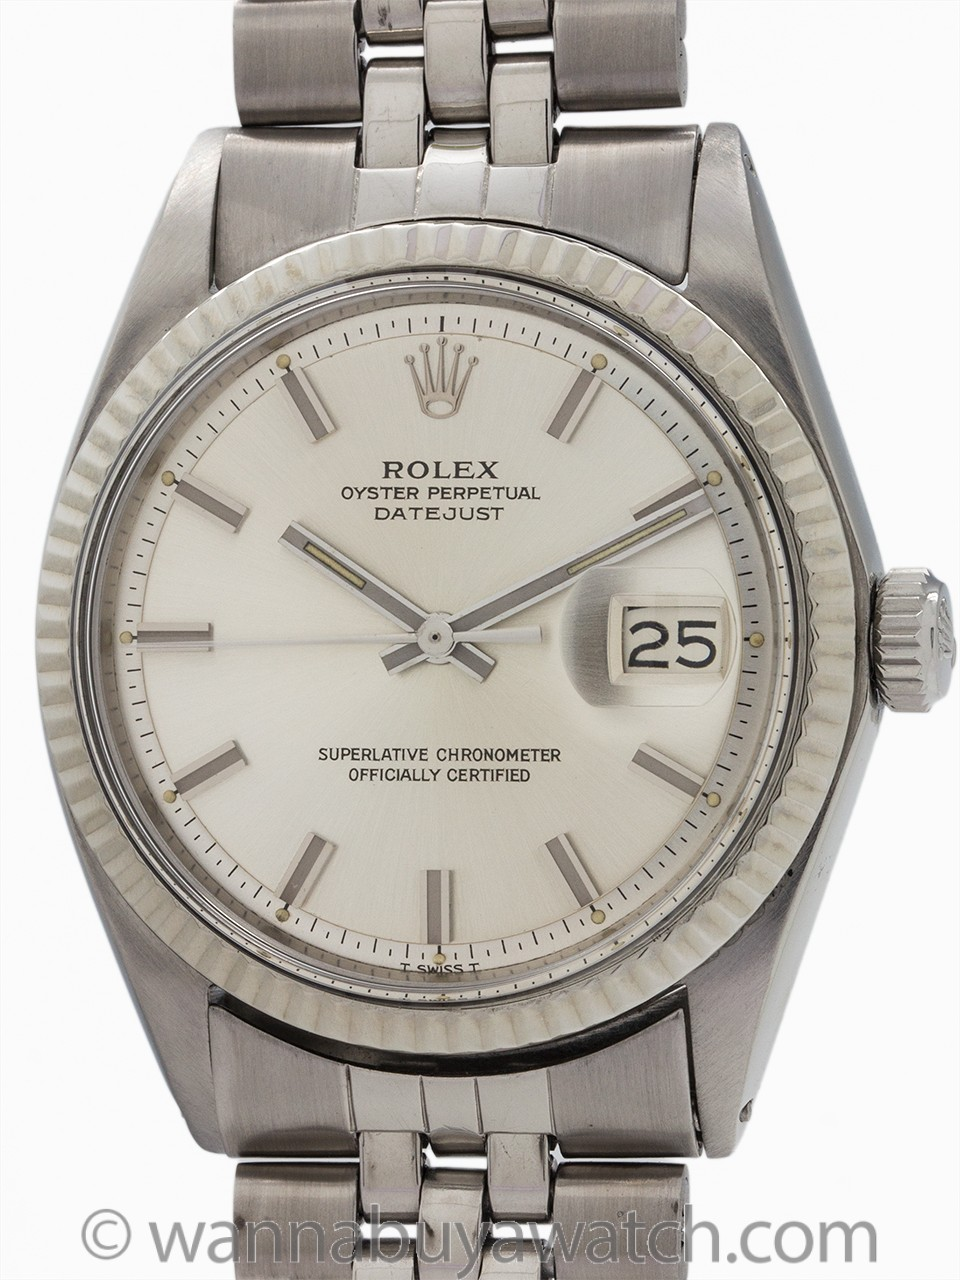 "Rolex Datejust ref 1601 SS/14K WG ""Fat Boy"" circa 1968"